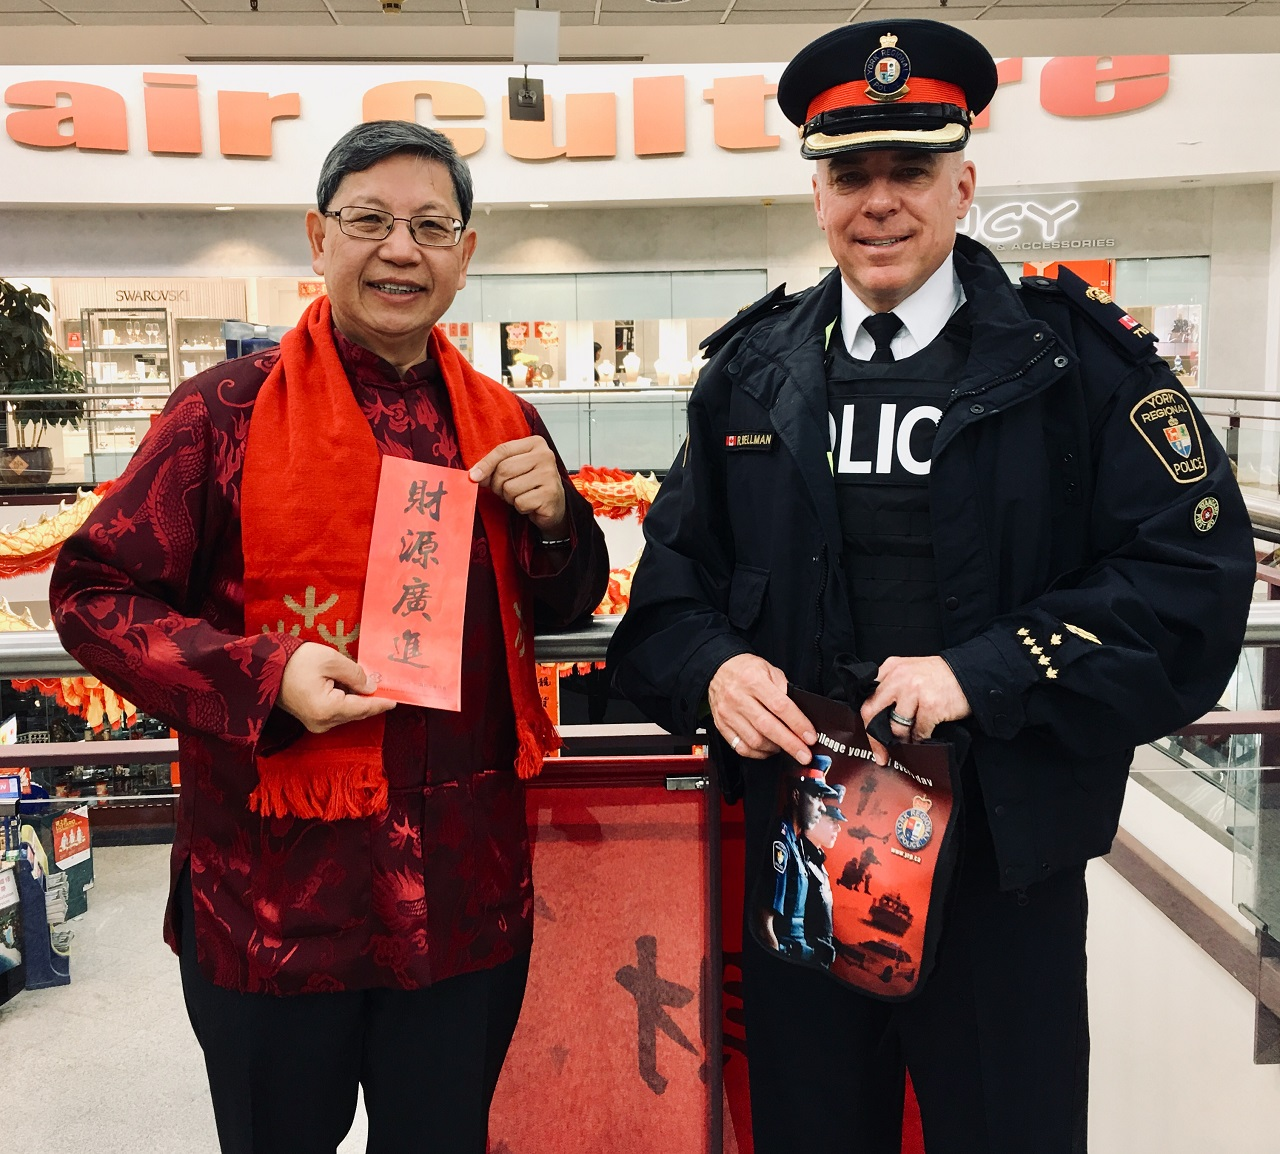 Godwin Chan at Mall Walk with Police